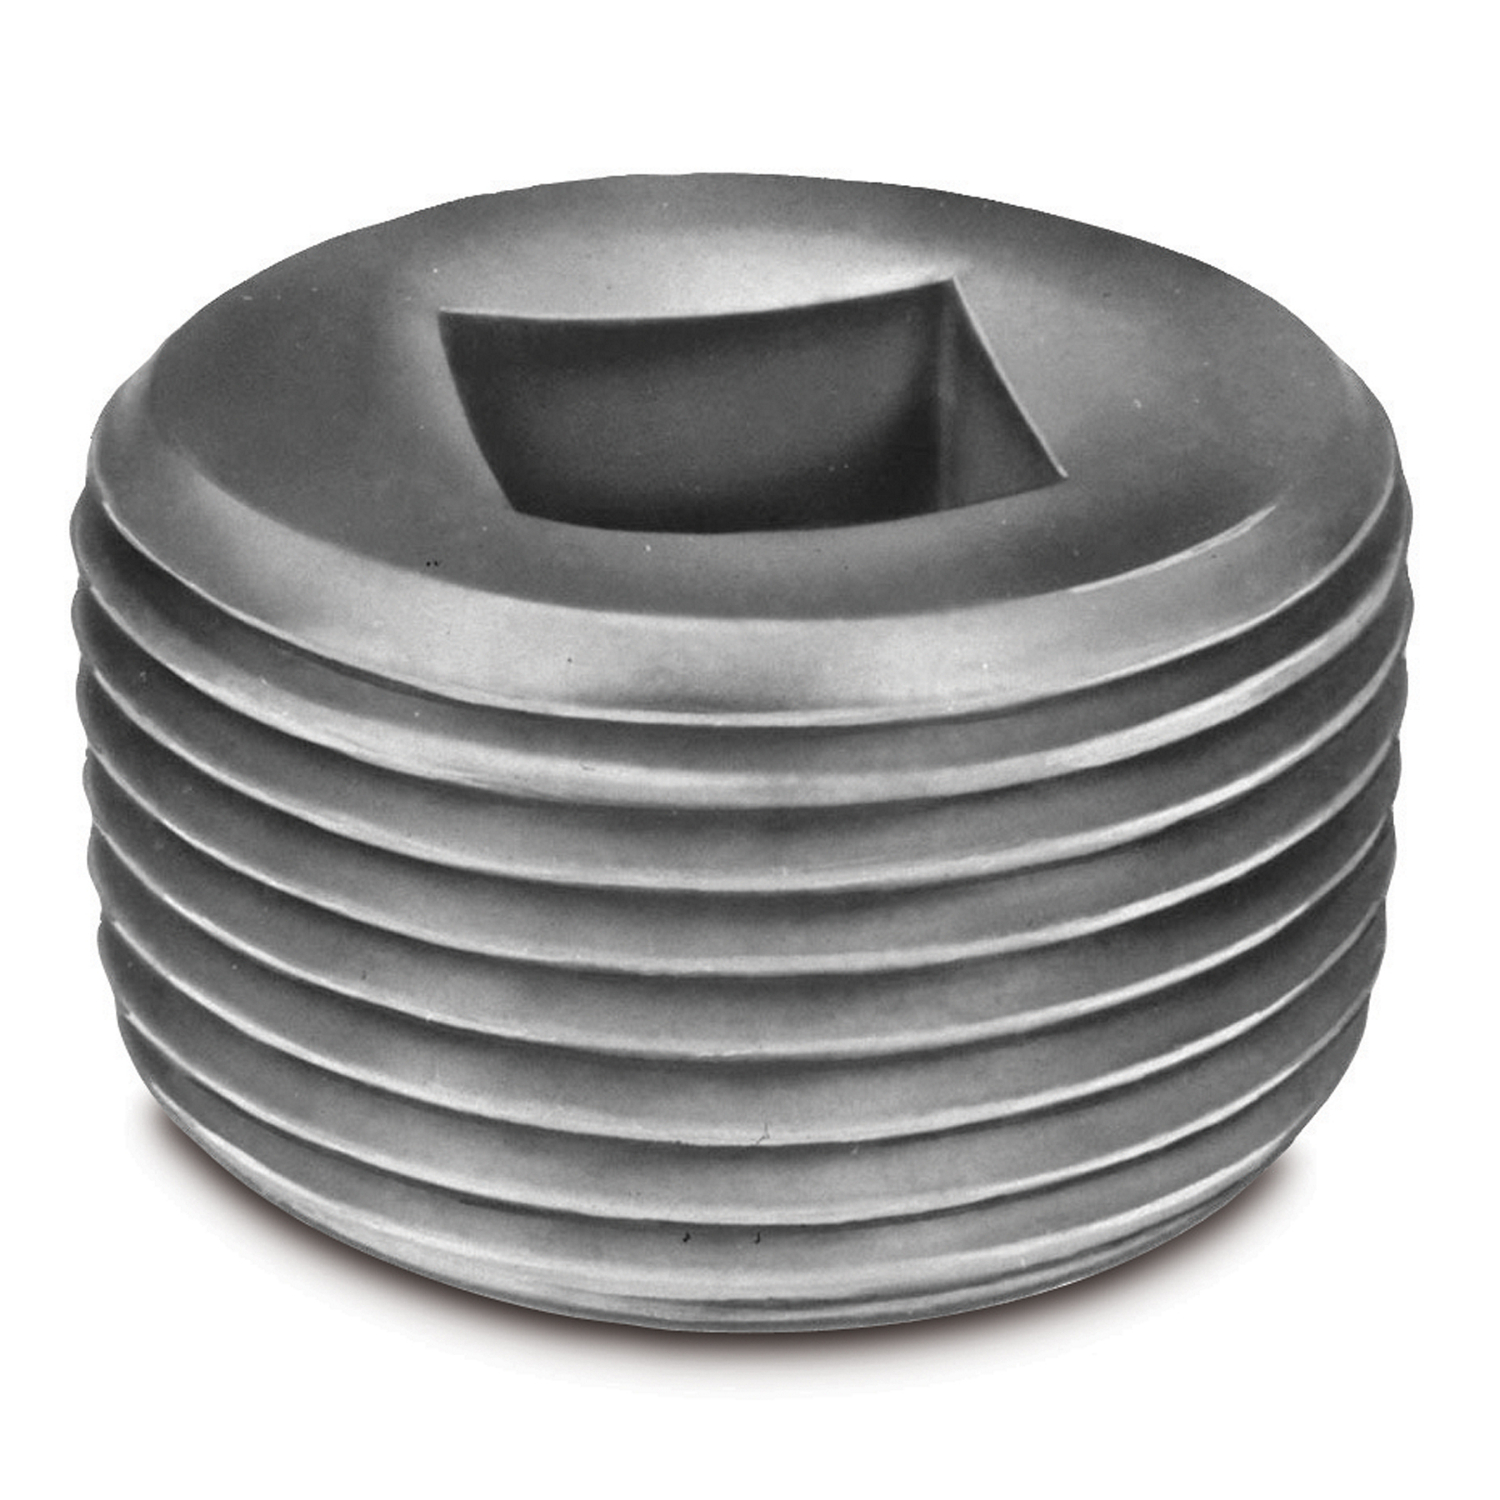 T&B Industrial Fitting Recessed Plug, 3/4 in, For Use With: Rigid/IMC Conduit, Aluminum, Zinc Plated